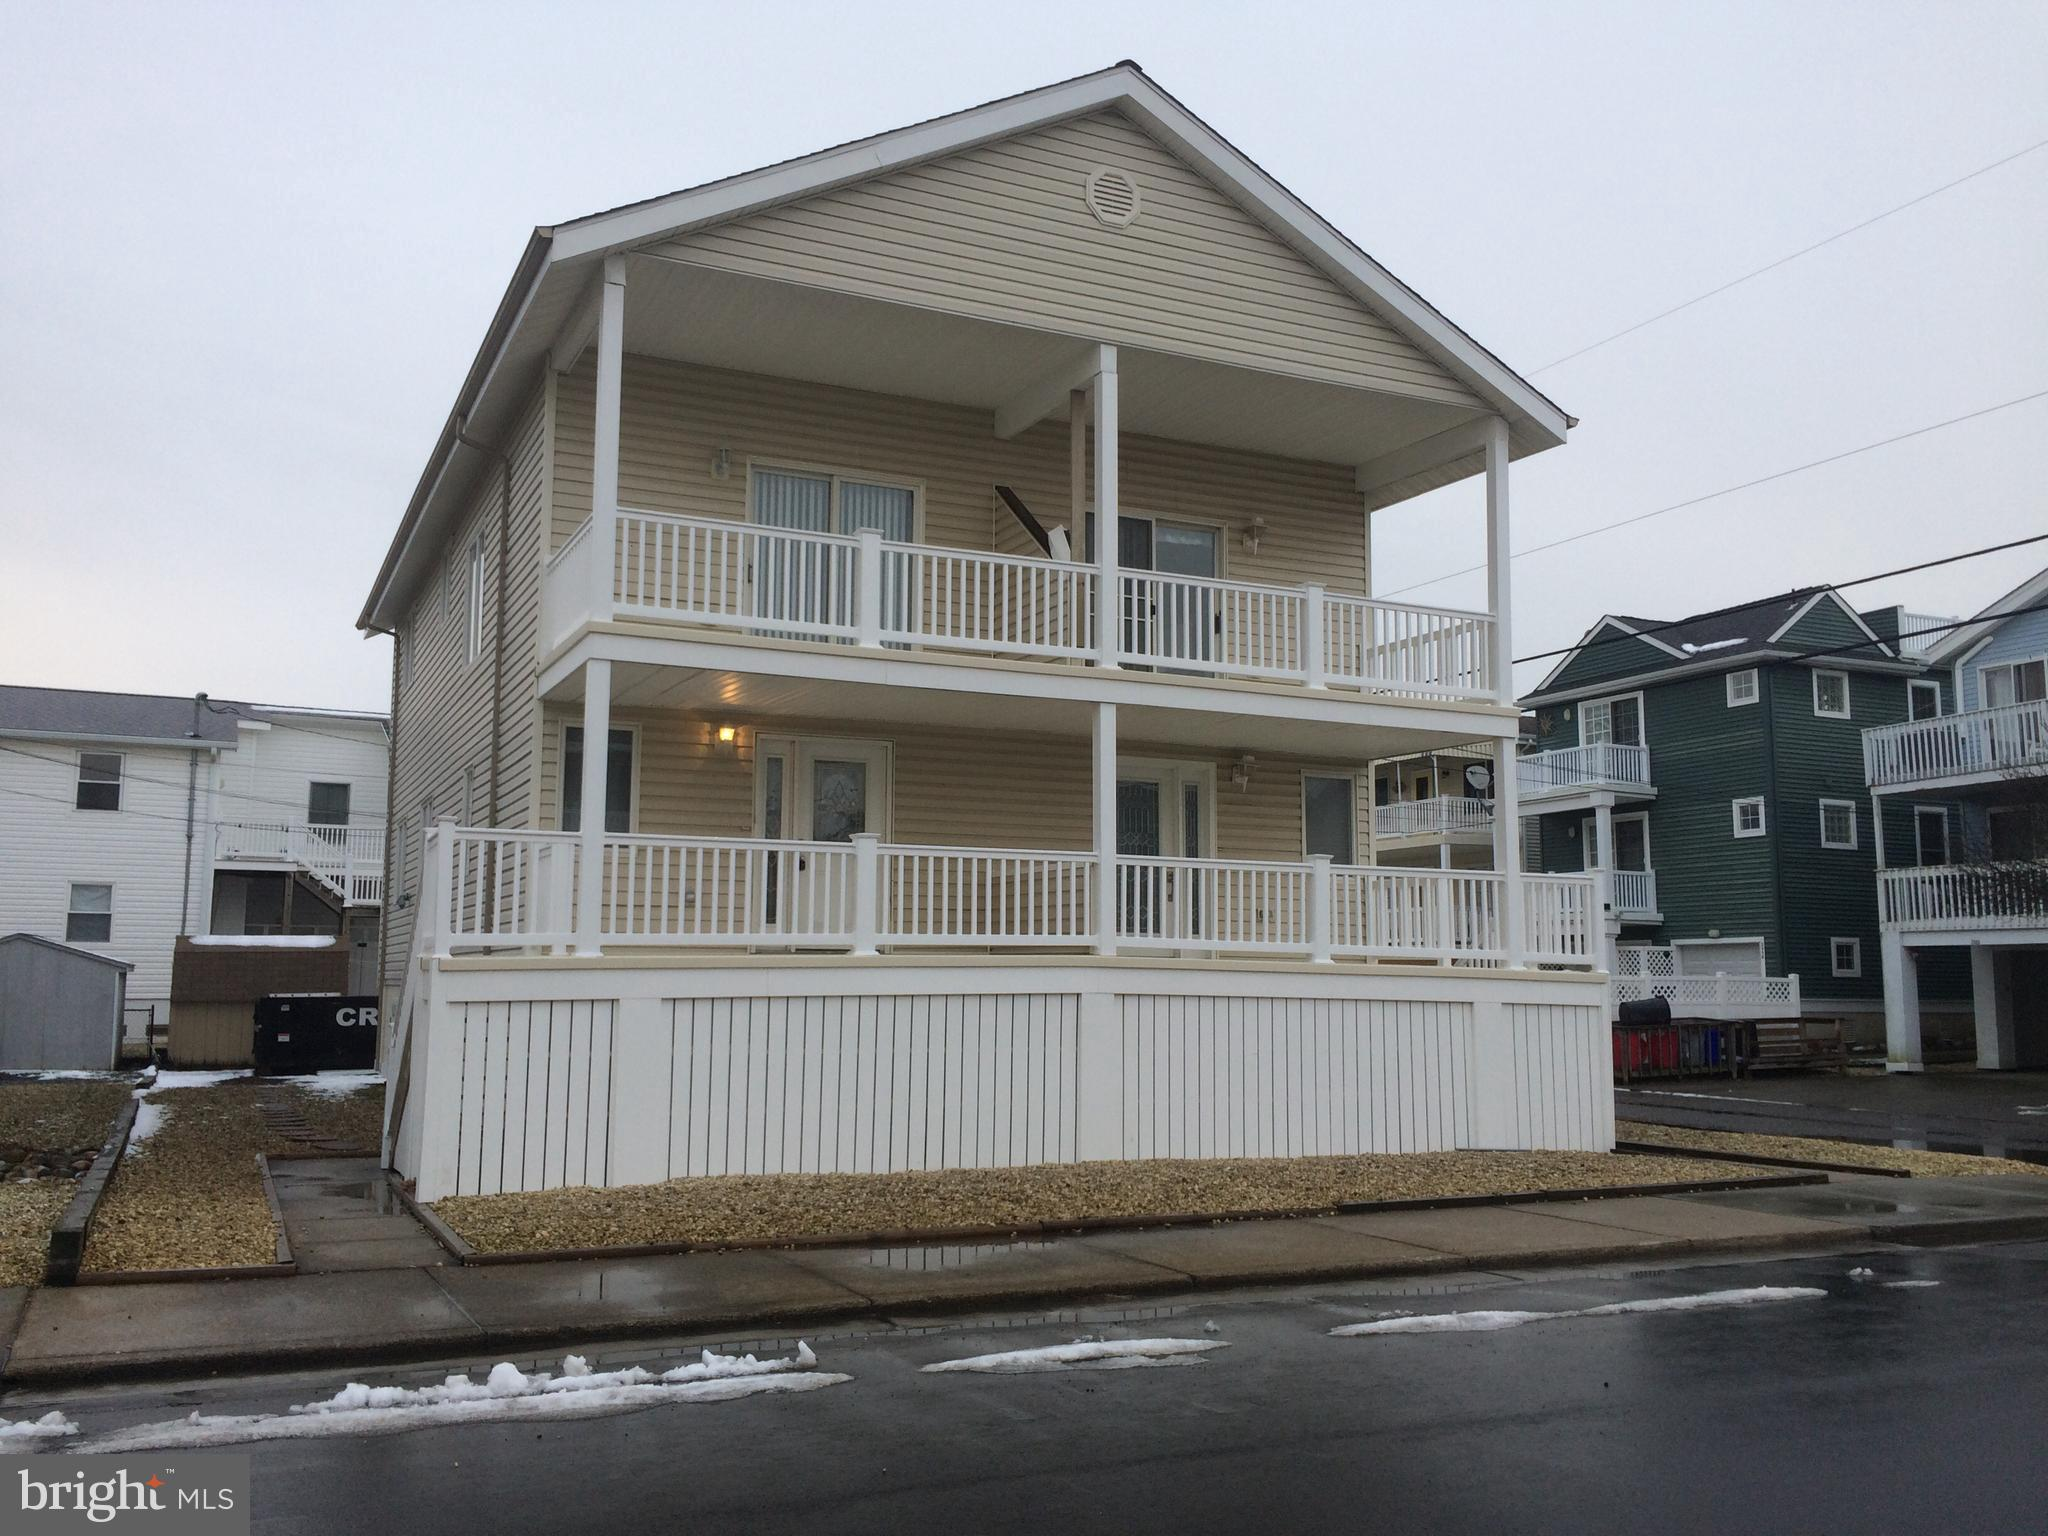 205 30TH STREET B, OCEAN CITY, NJ 08226